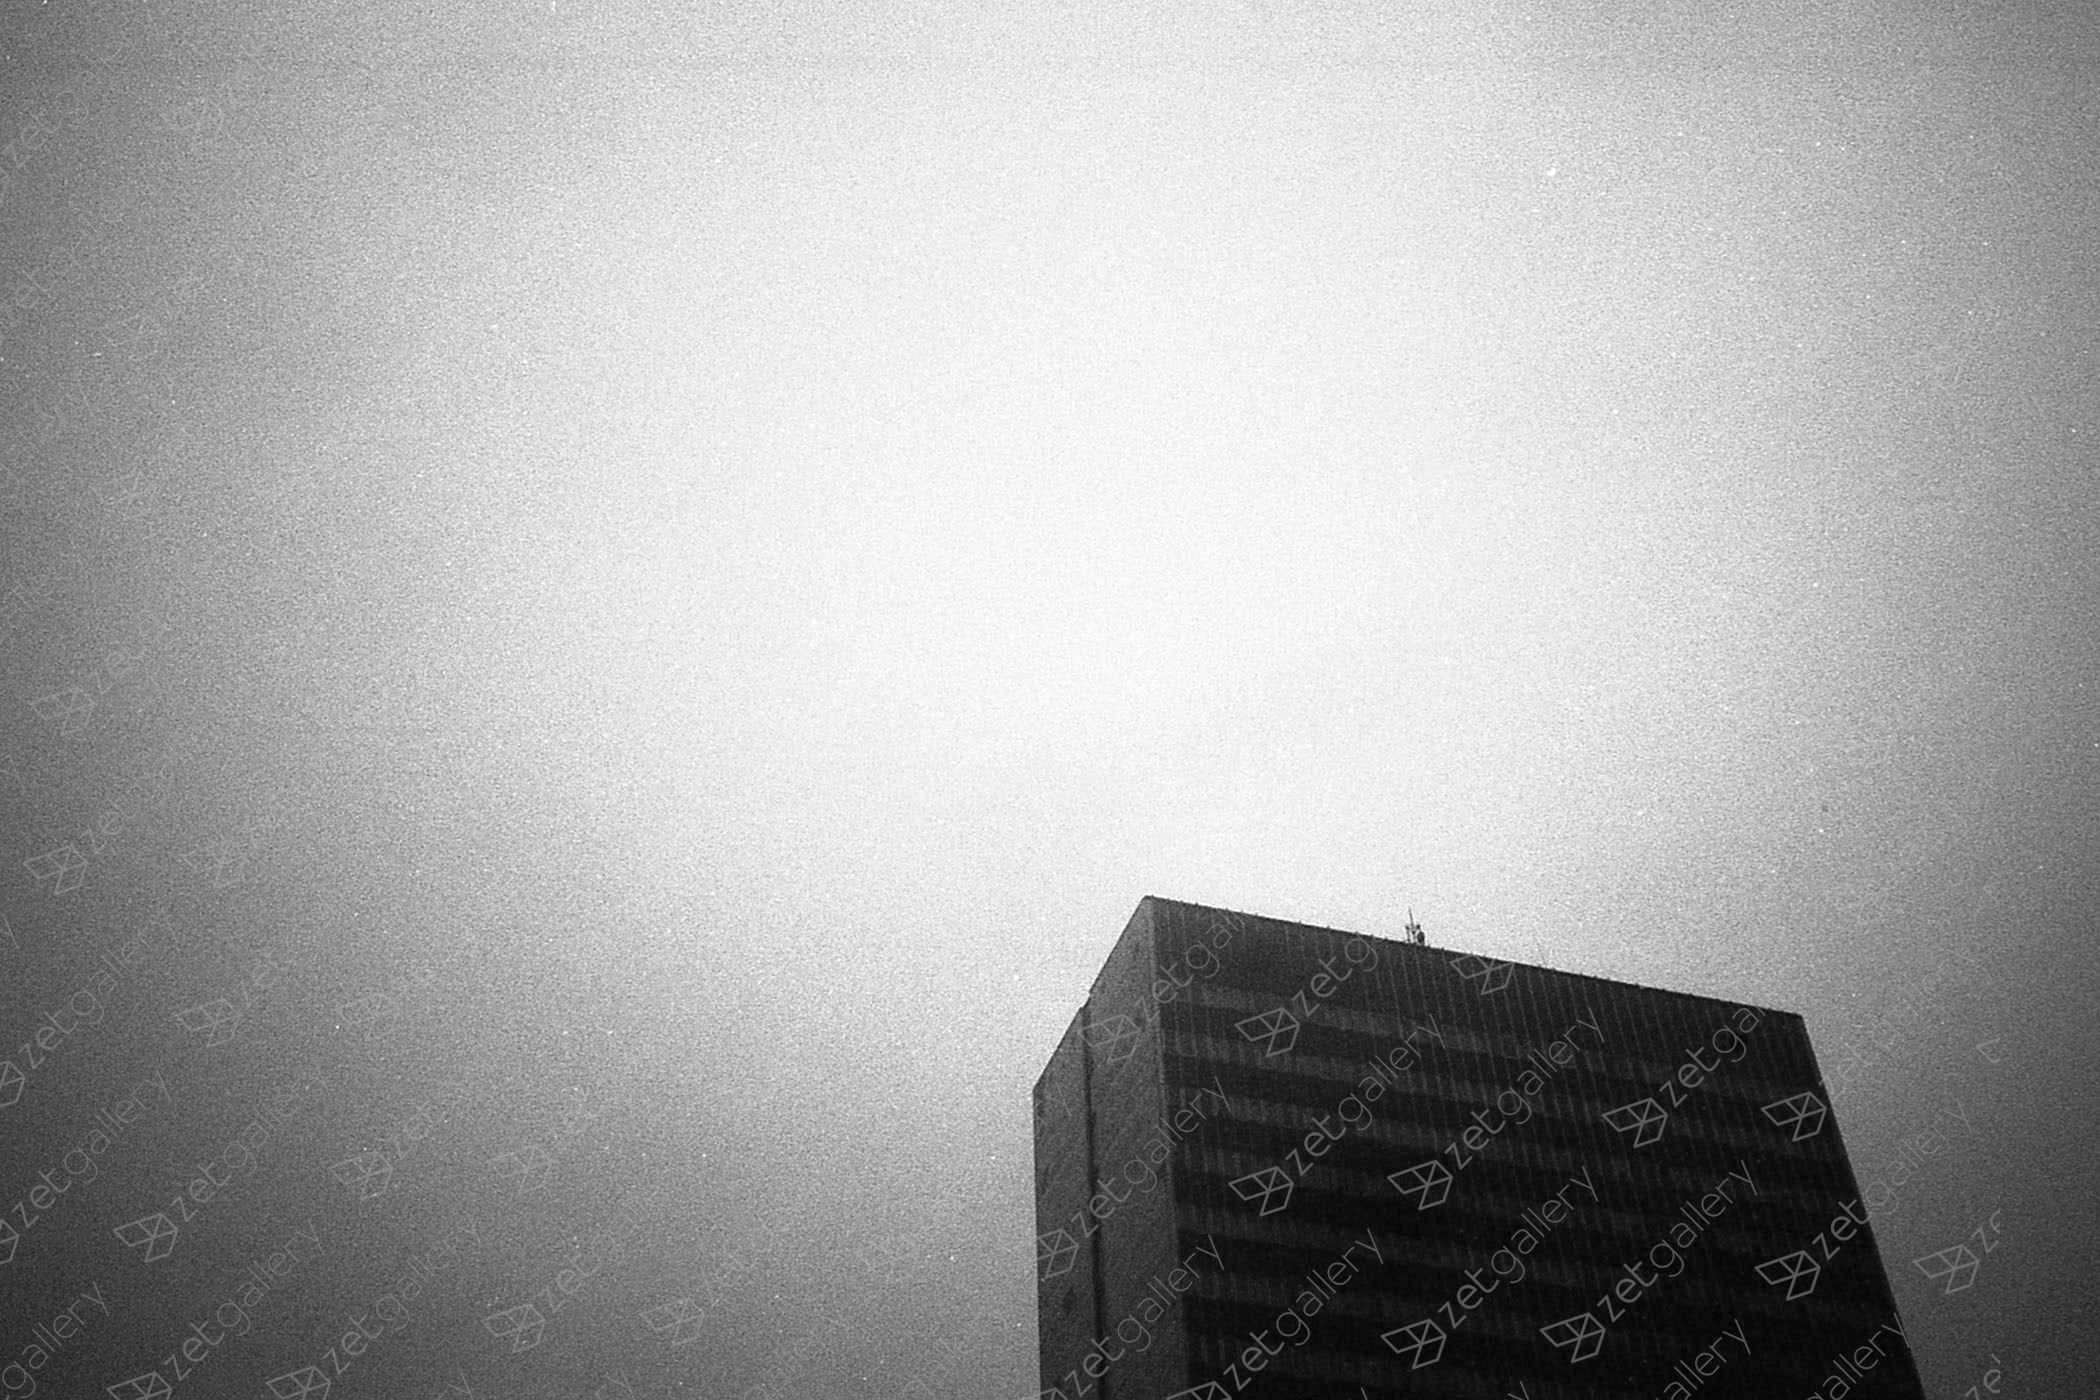 Untitled, original Architecture Analog Photography by Giorgos Kapsalakis